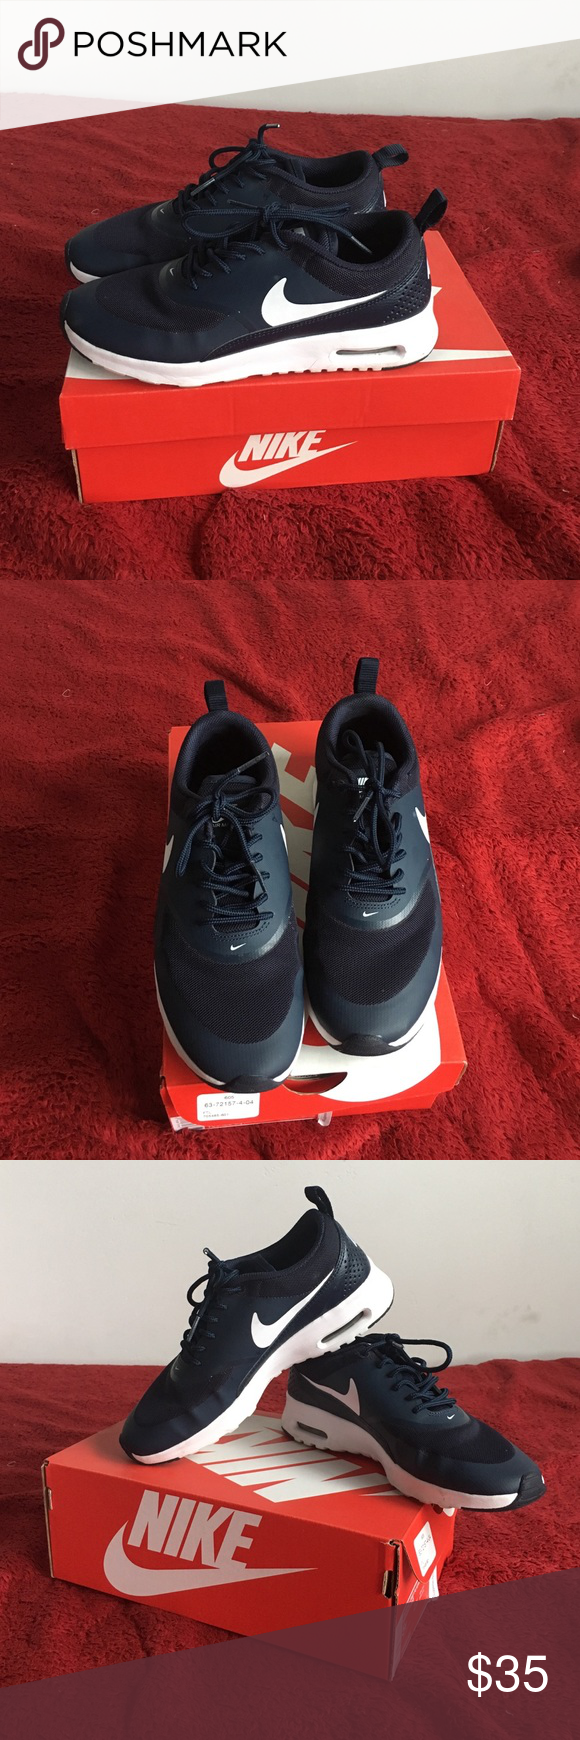 Nike shoes Navy blue, they have been worn but still in great shape! Nike Shoes Athletic Shoes